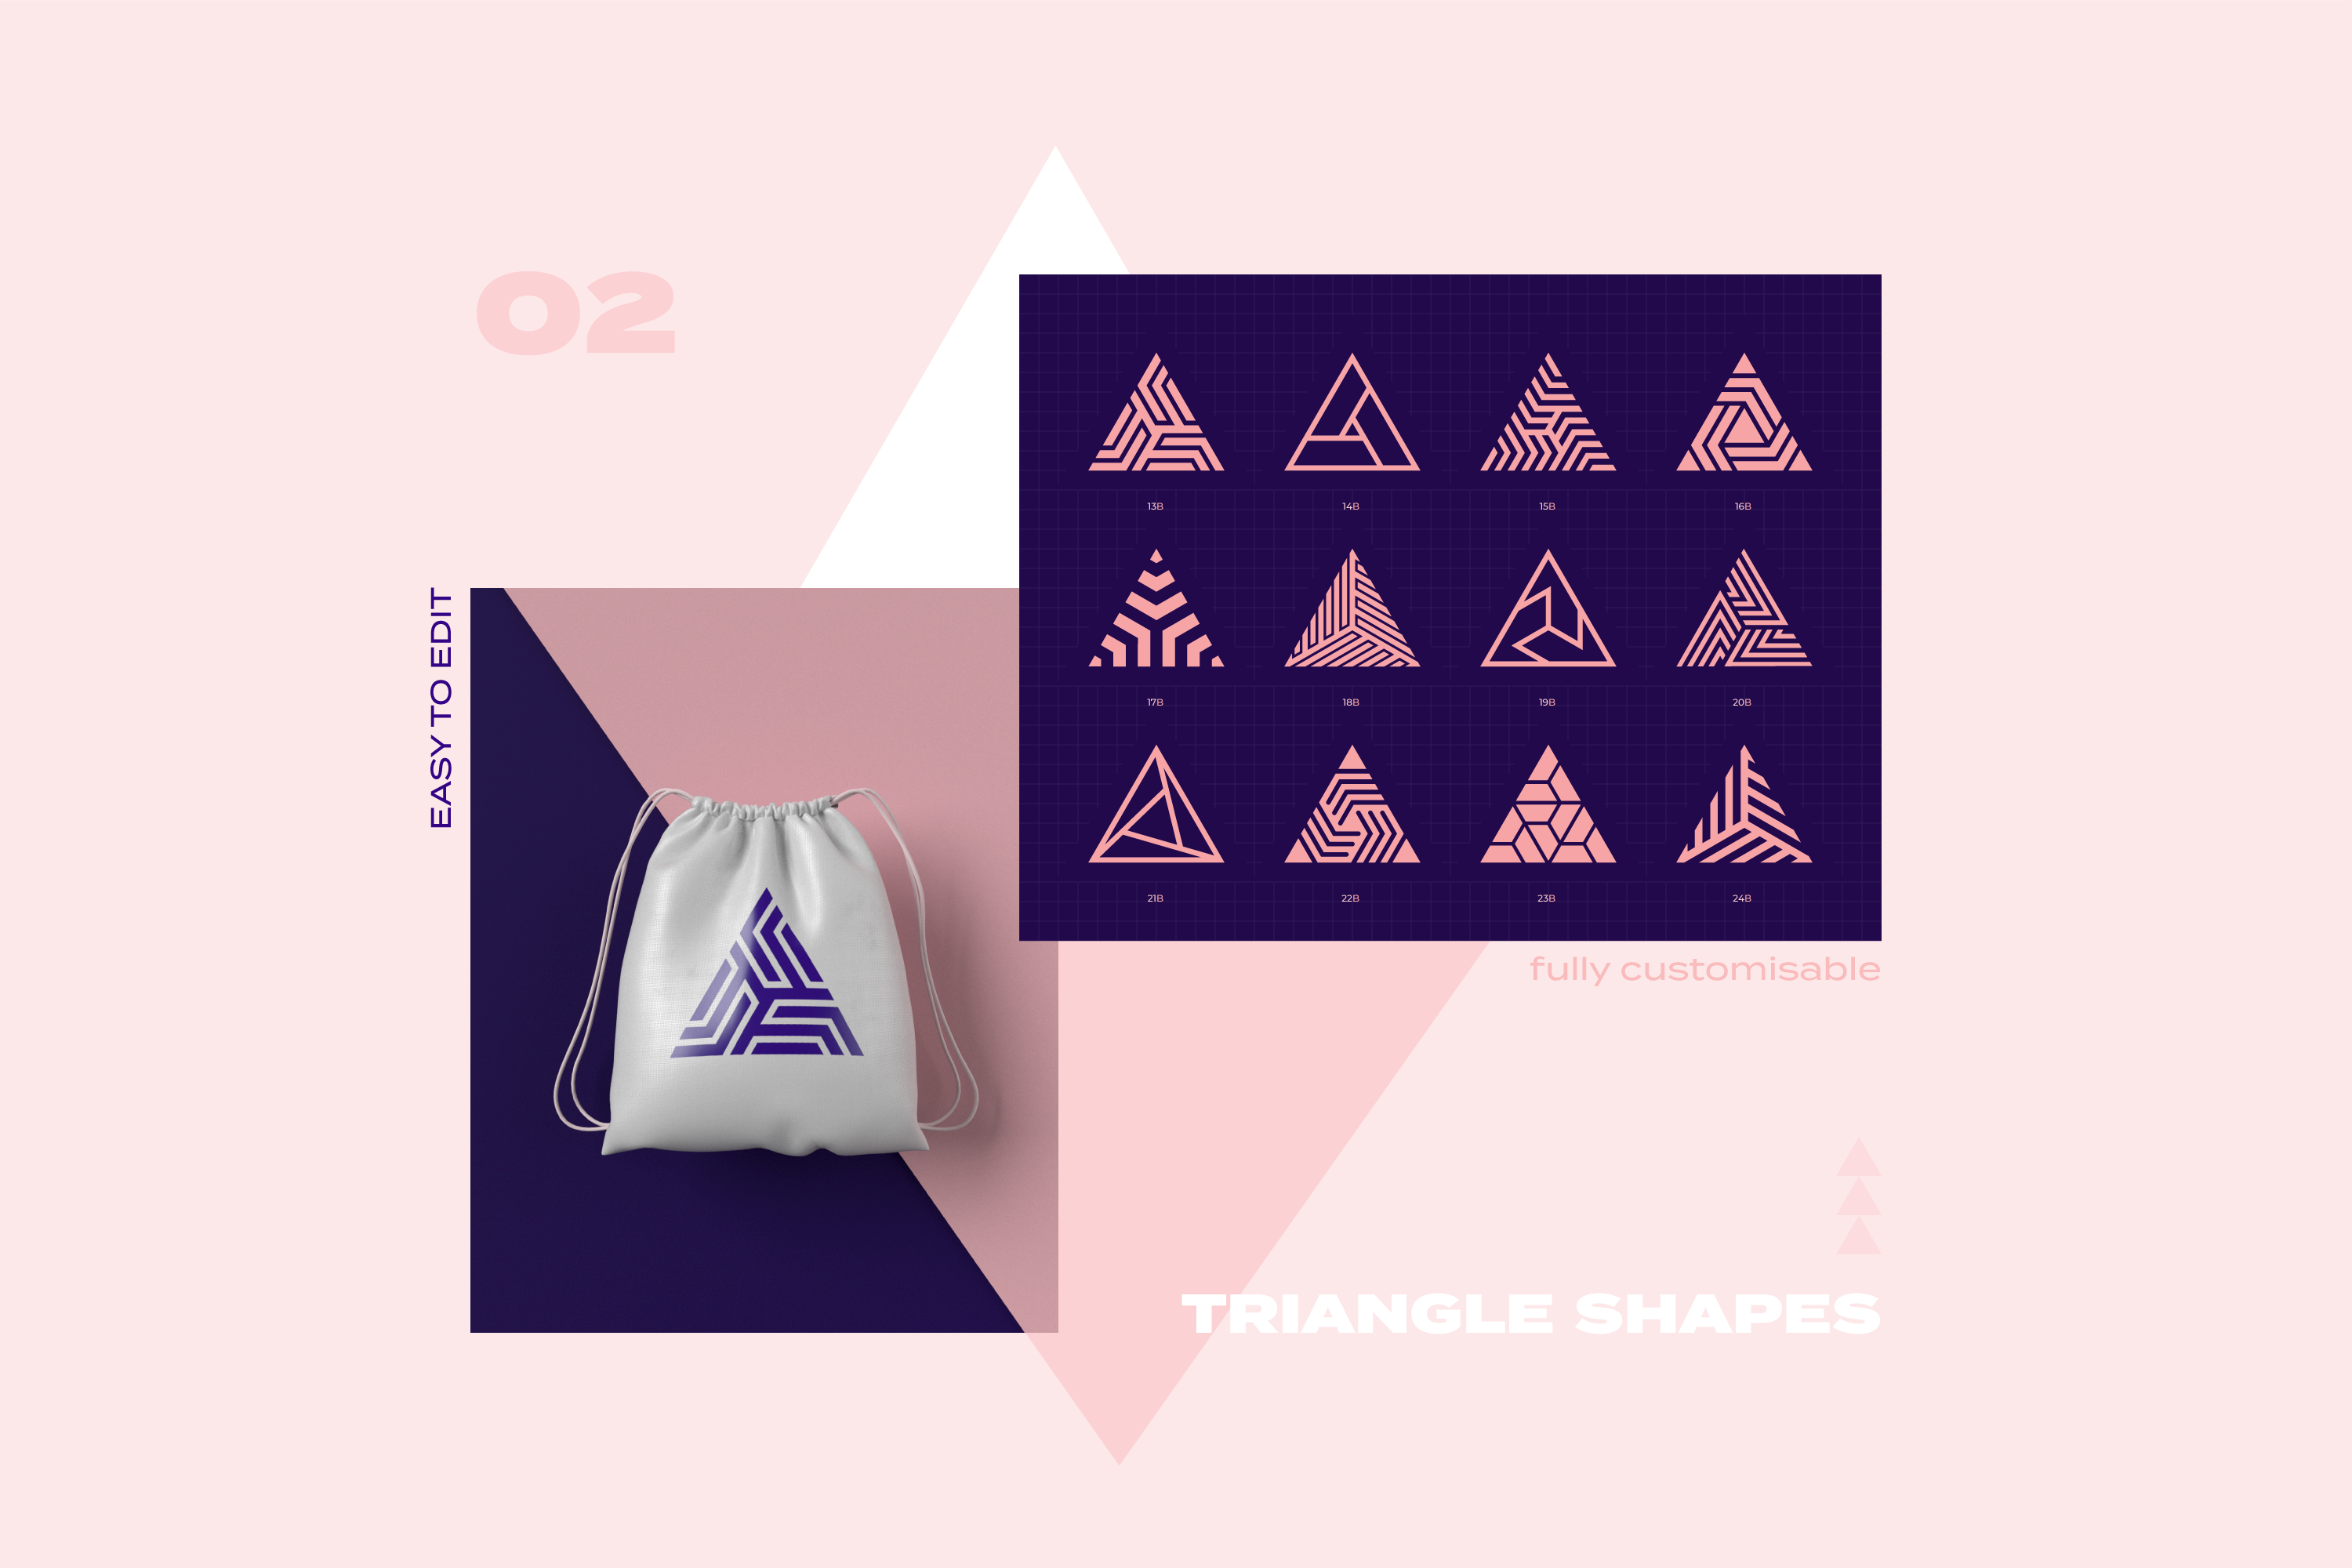 96 Geometric shapes & logo marks collection VOL.1 example image 6